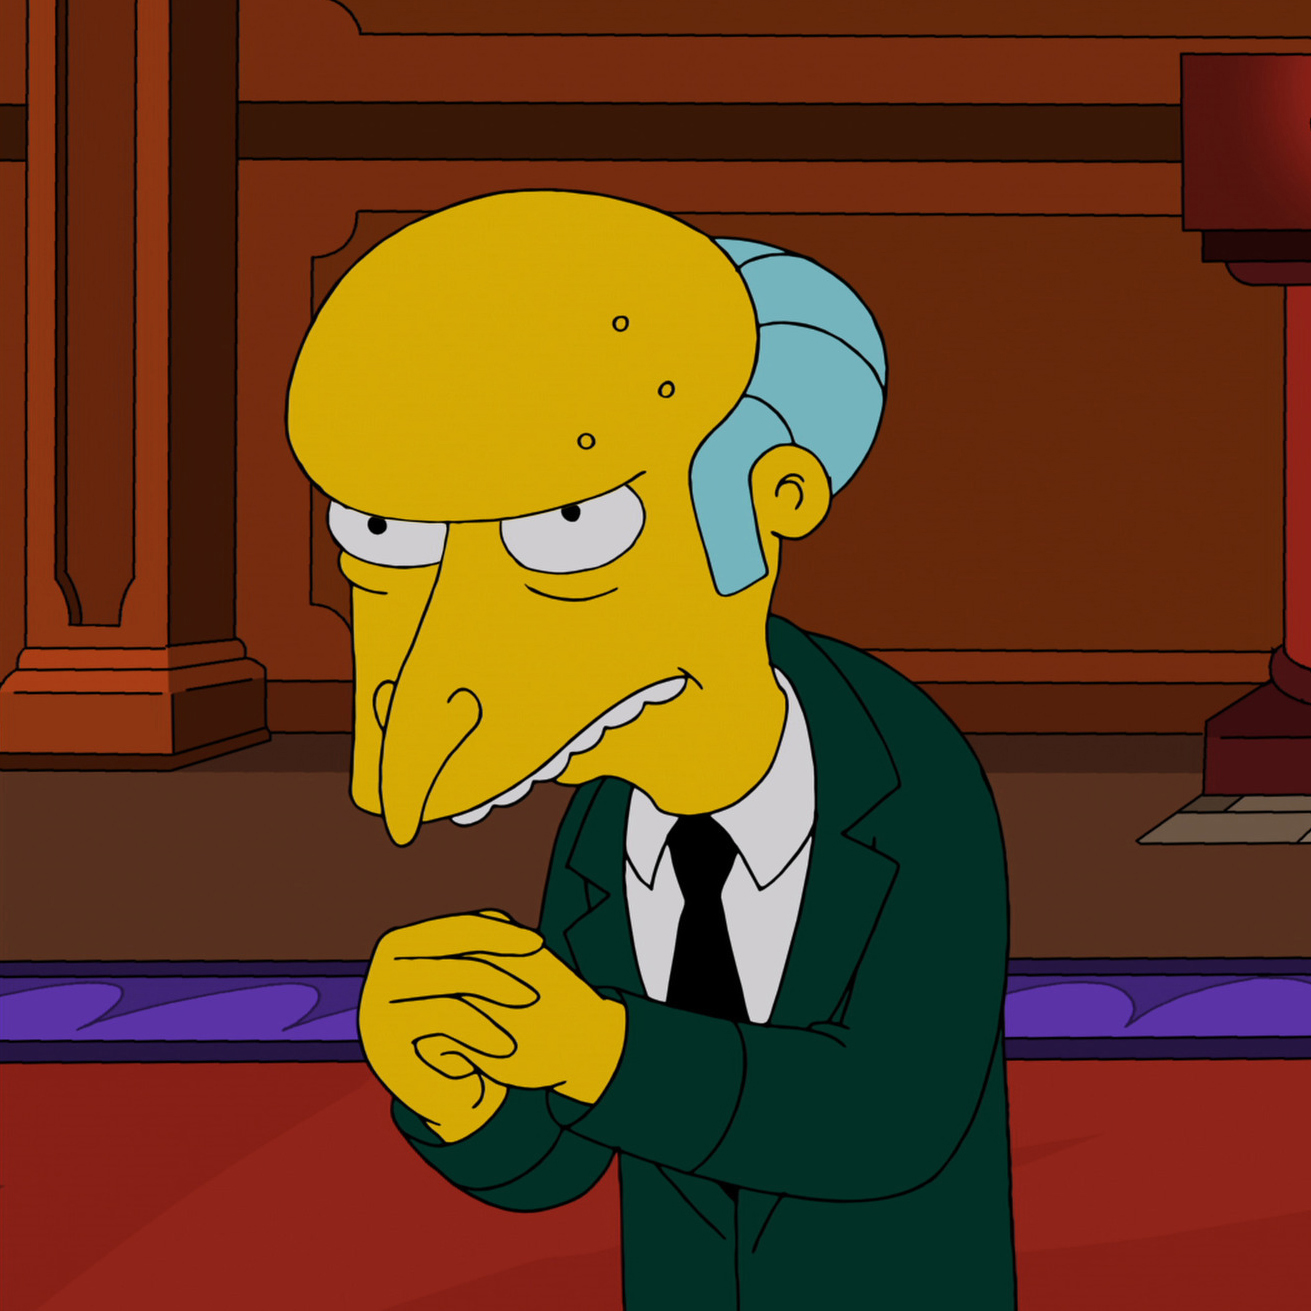 Monty Burns on THE SIMPSONS